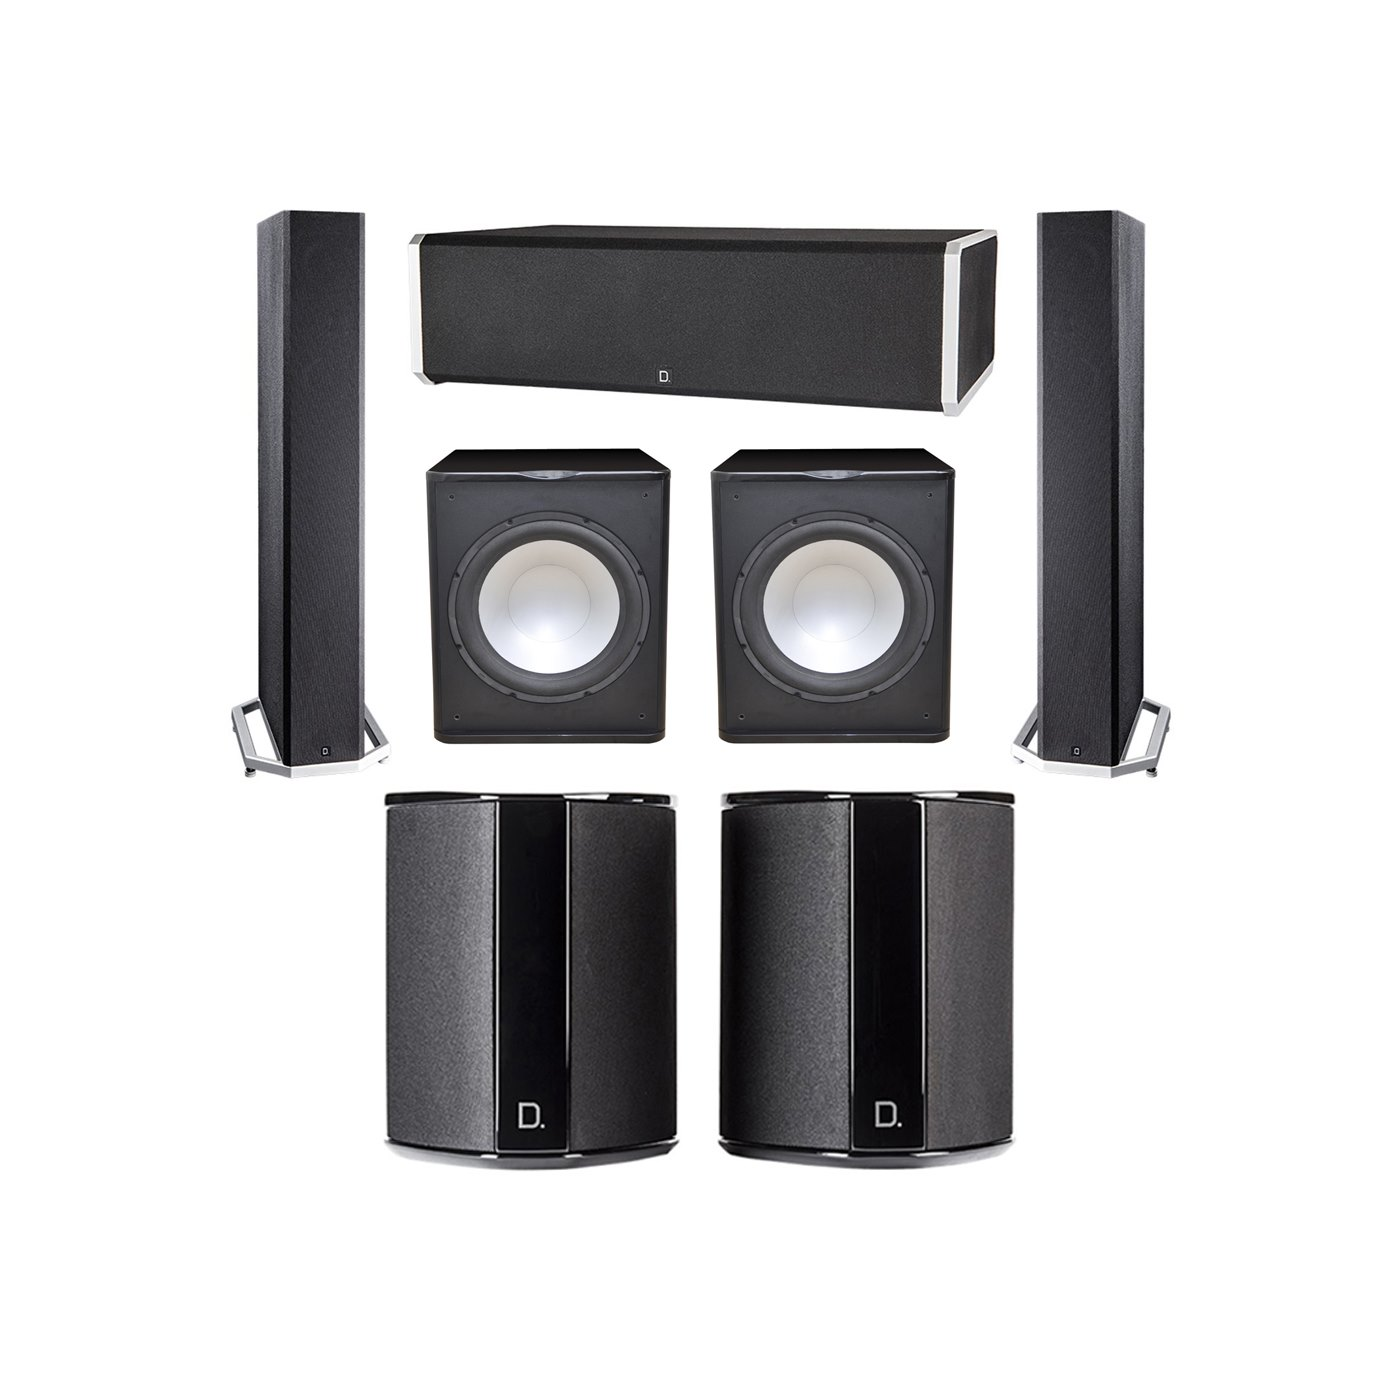 Definitive Technology 5.2 System with 2 BP9040 Tower Speakers, 1 CS9060 Center Channel Speaker, 2 SR9040 Surround Speaker, 2 Premier Acoustic PA-150 Subwoofer